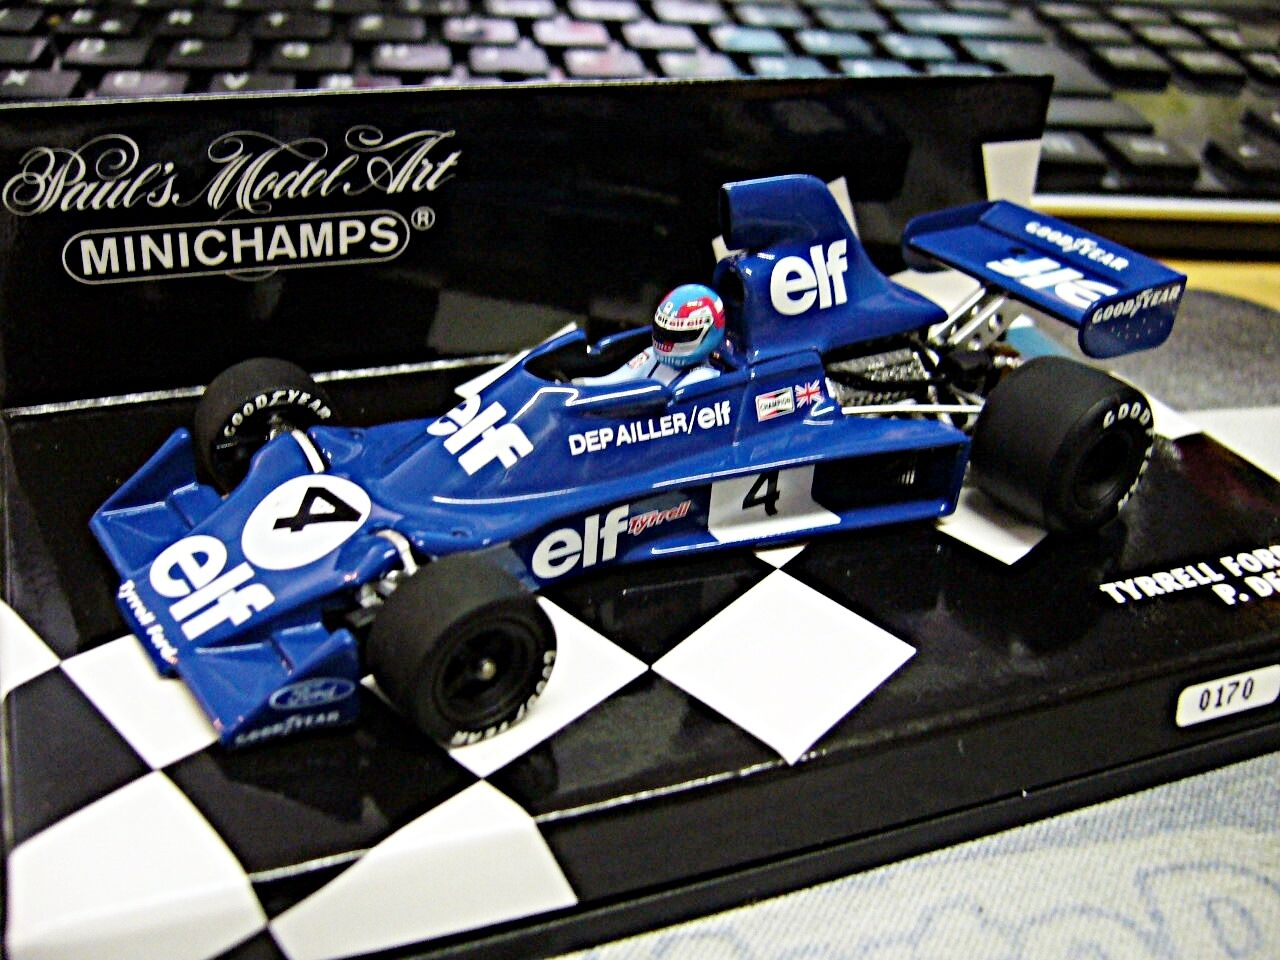 F1 tyrrell Ford Cosworth 007 1975 Depailler  4 onze LIMITED MINICHAMPS 1 43